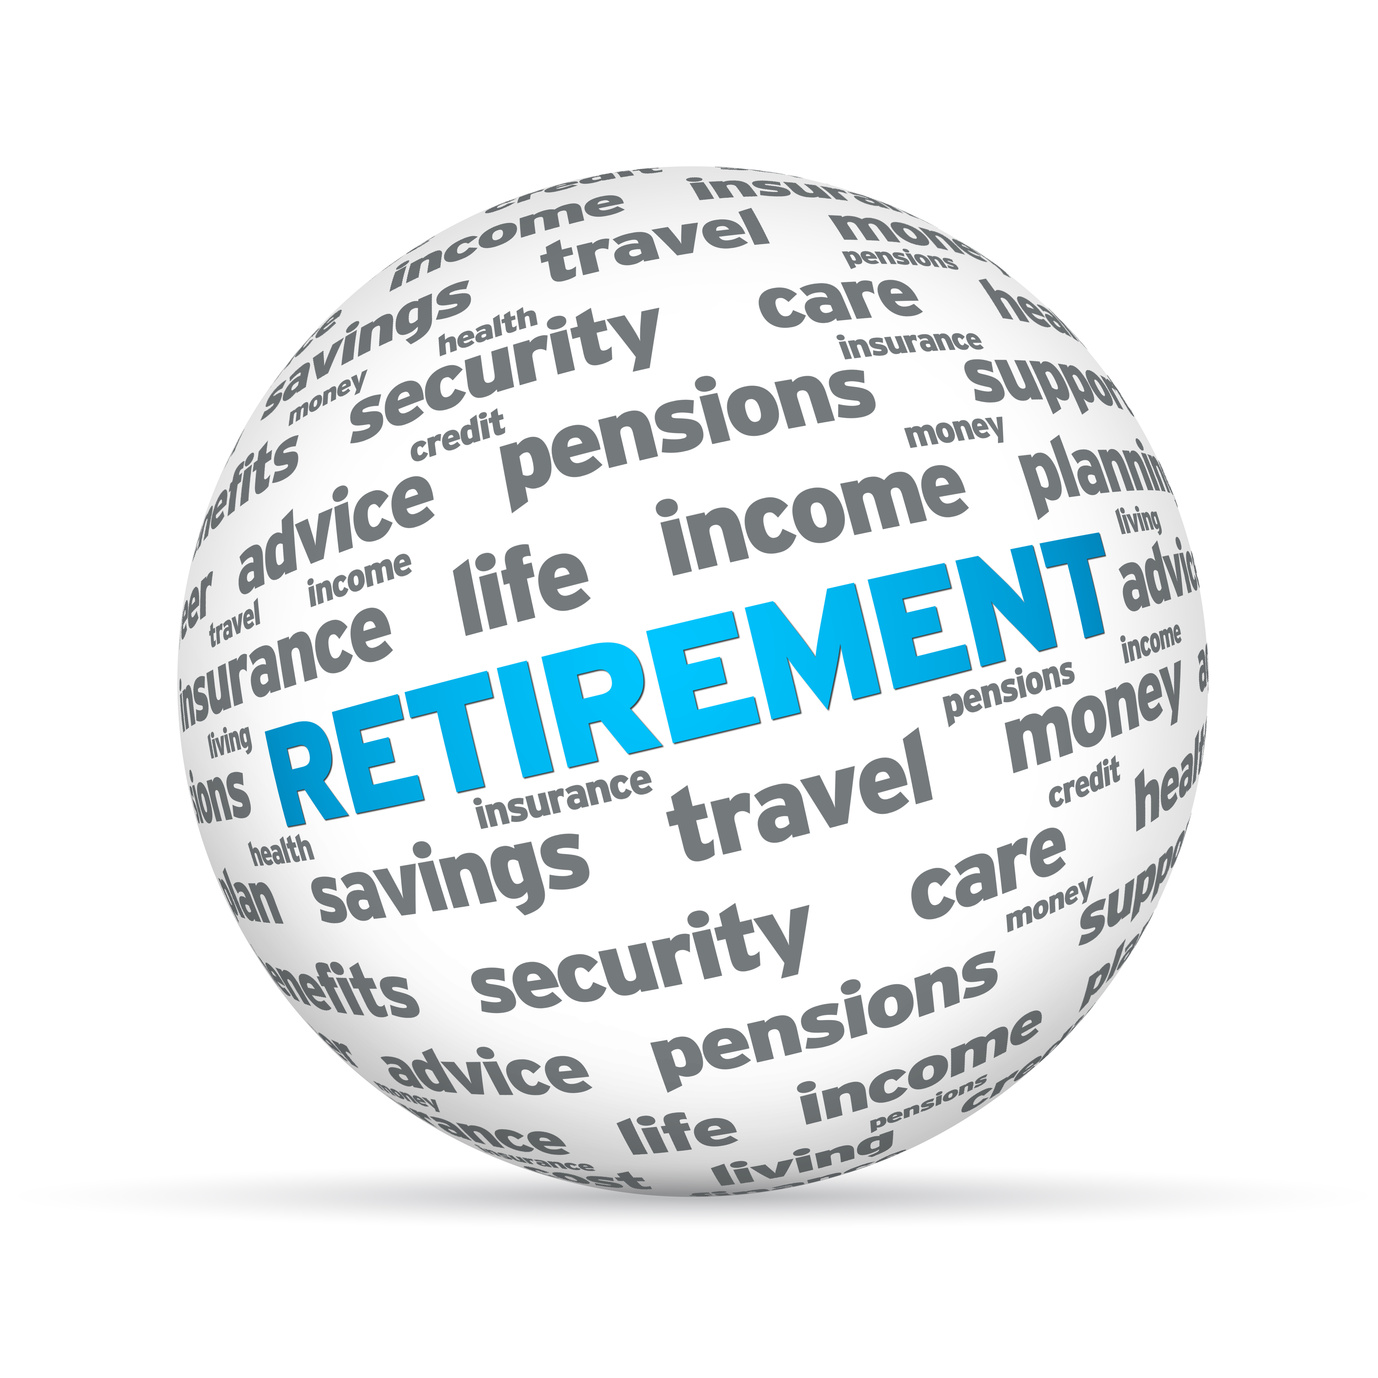 Retirement Changes: Health Care, Social Security, and Medicare in 2014